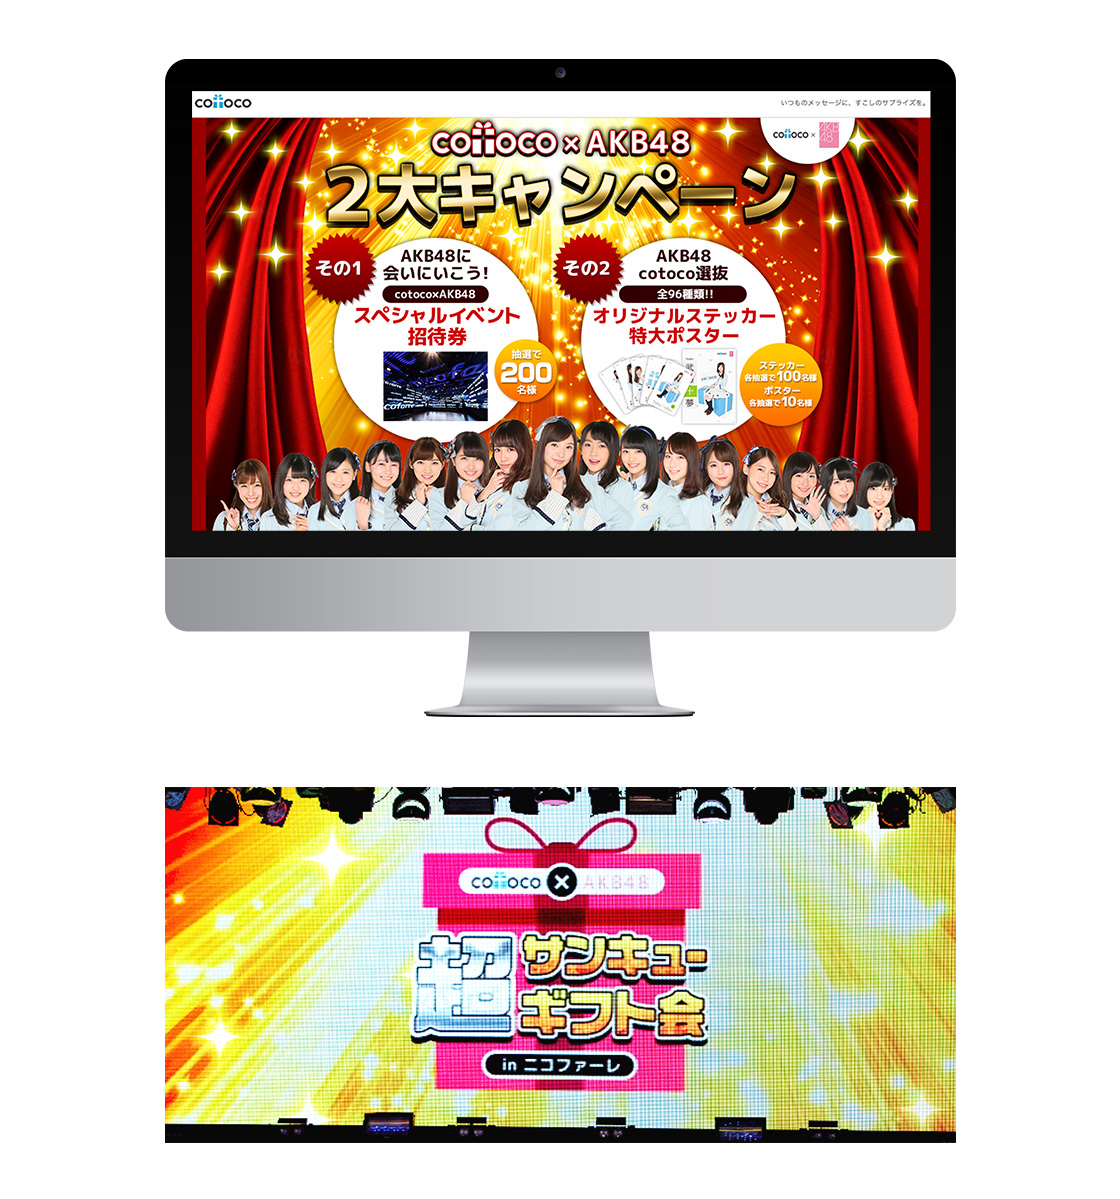 cotoco×AKB48 サンキューギフト会 inニコファーレWebサイト